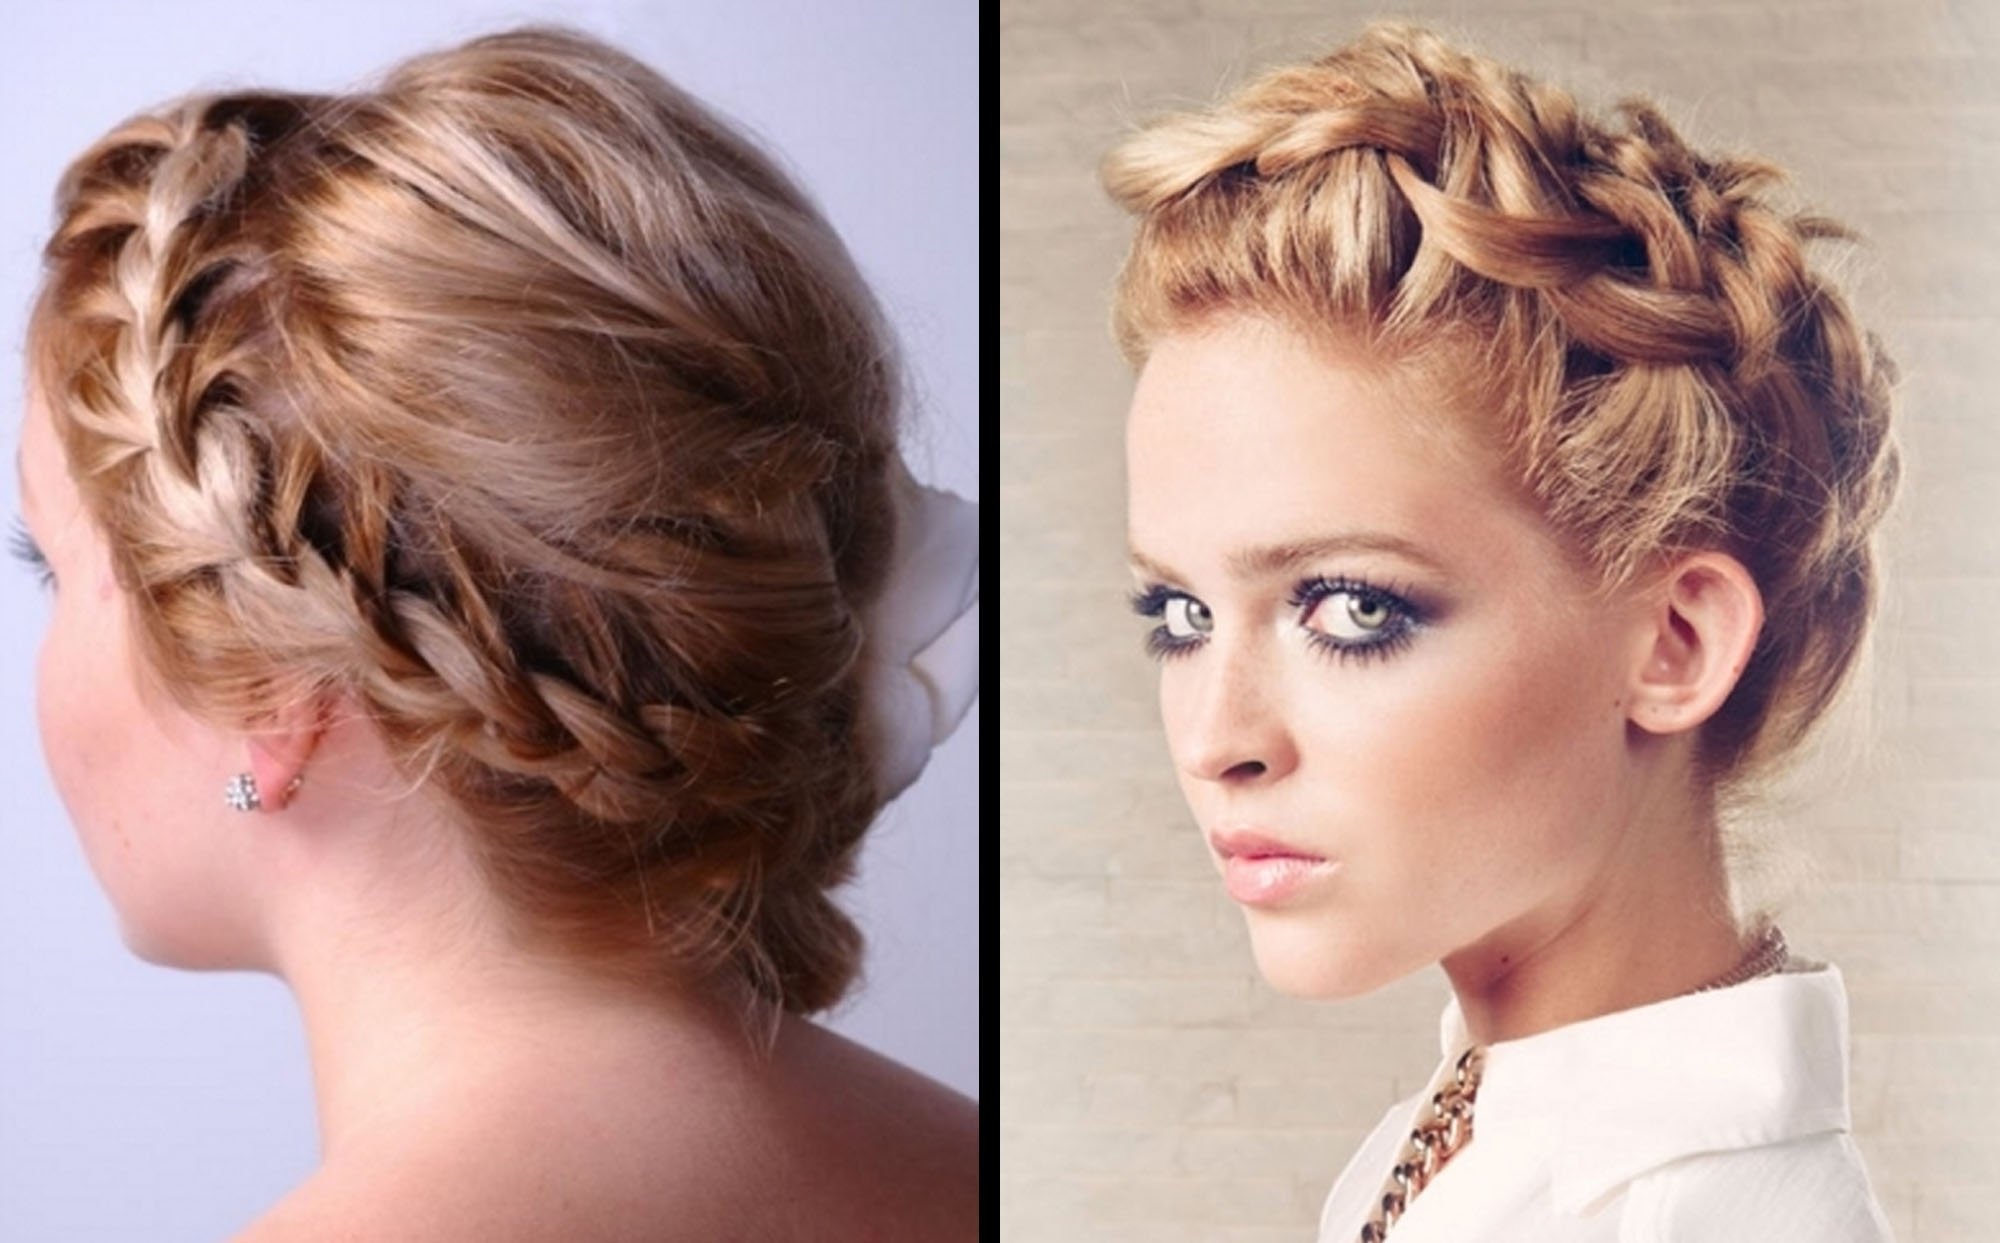 Hair Prom Styles Short Prom Hairstyles Braids Medium Hair Styles Ideas Intended For Formal Short Hair Updo Hairstyles (View 10 of 15)